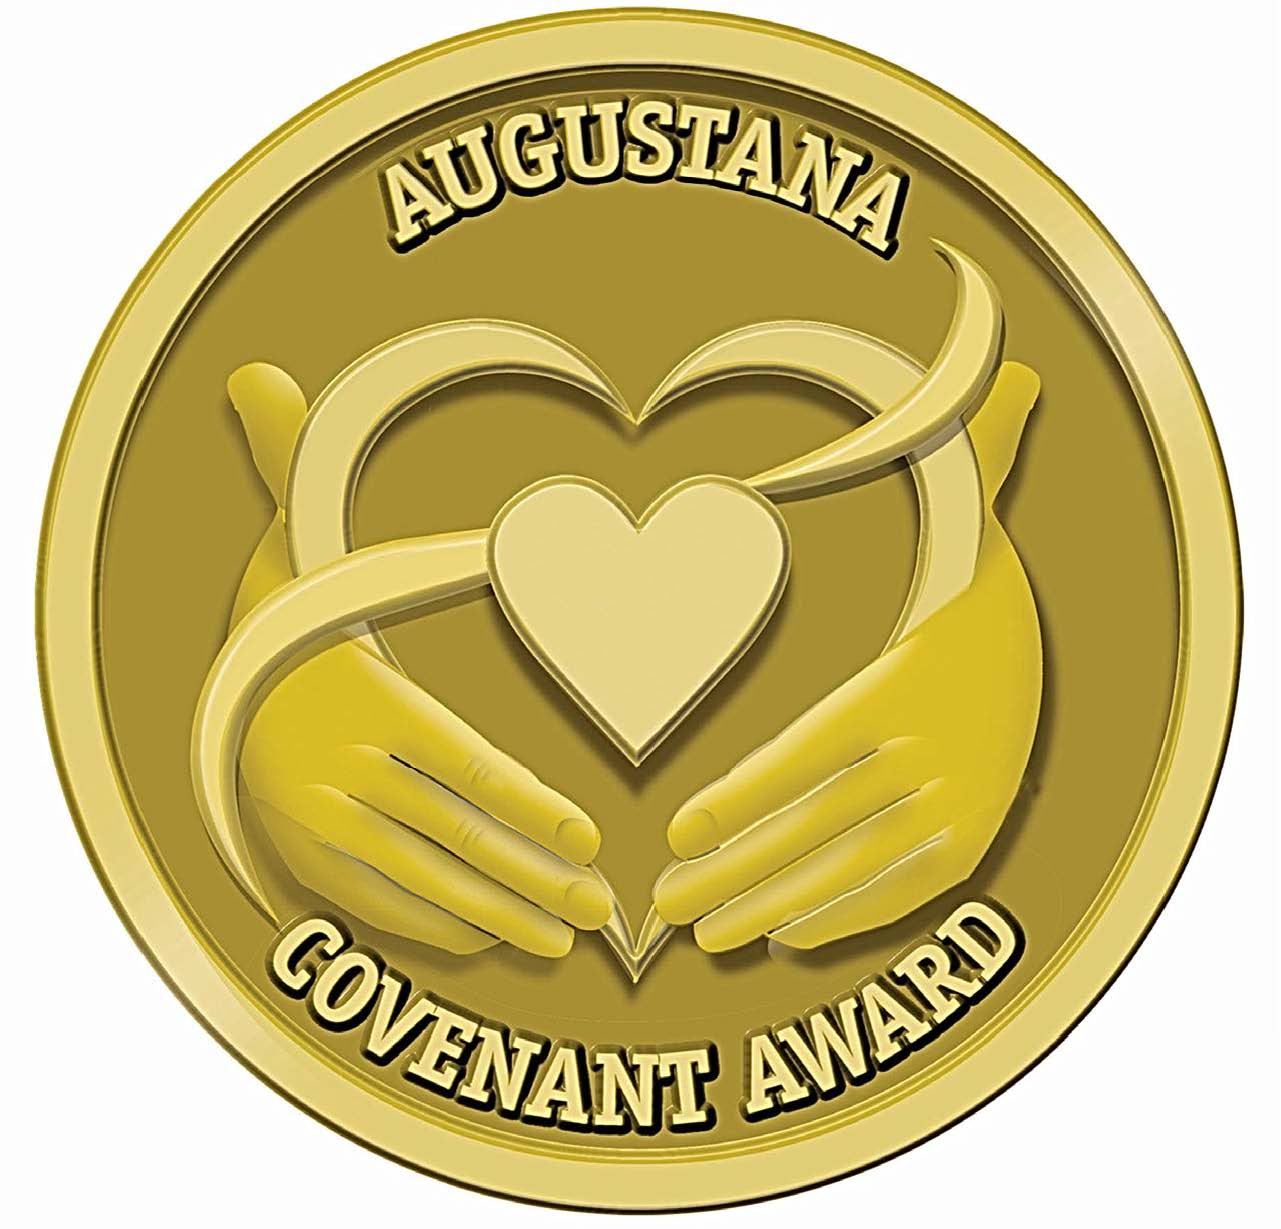 Augustana University Covenant award logo